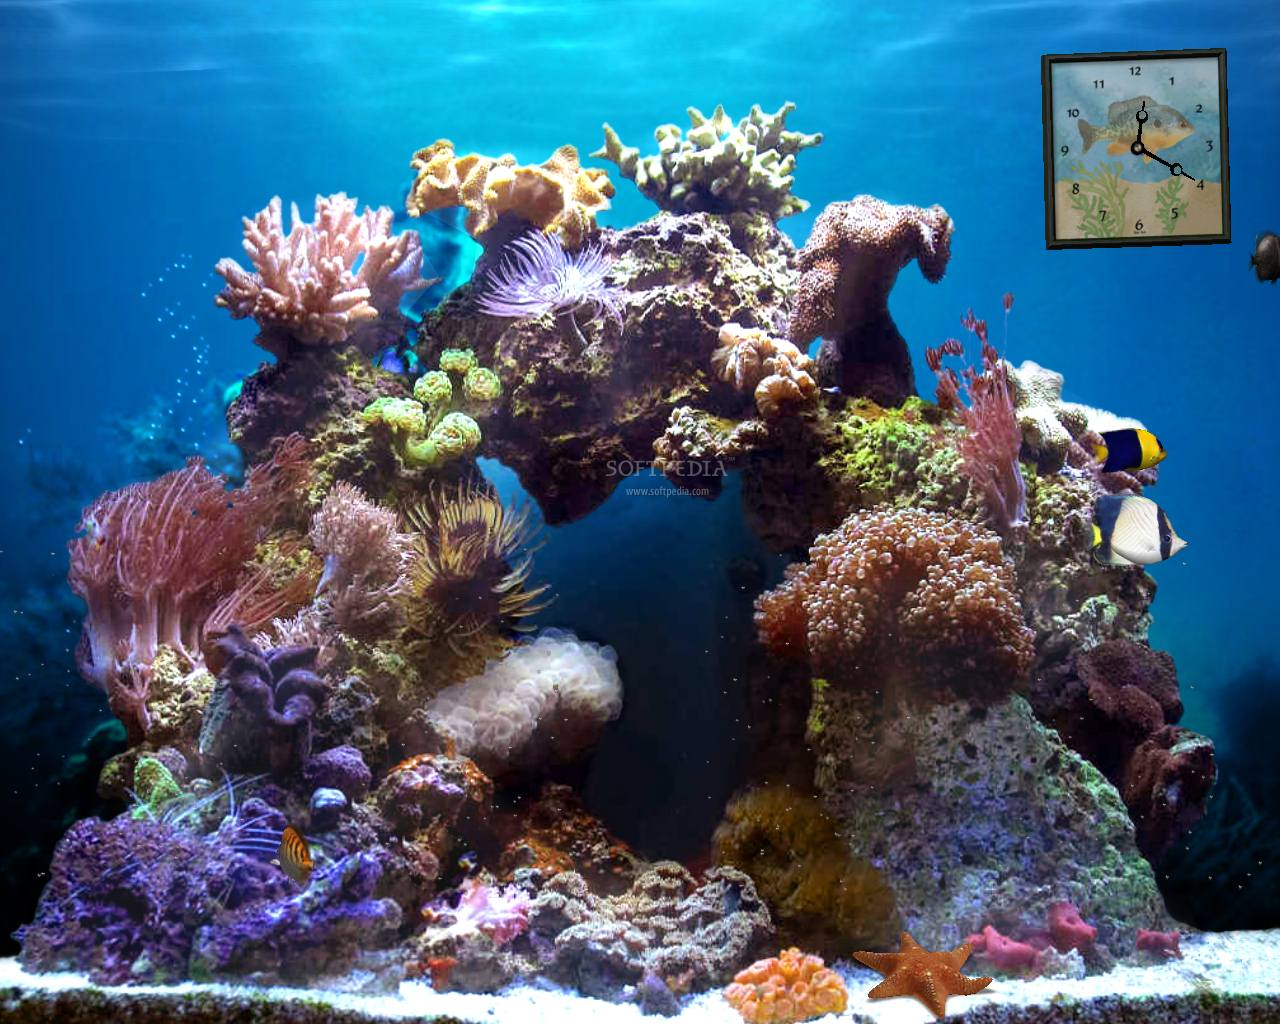 Beautiful Reef   Animated Wallpaper   This is the image displayed by 1280x1024